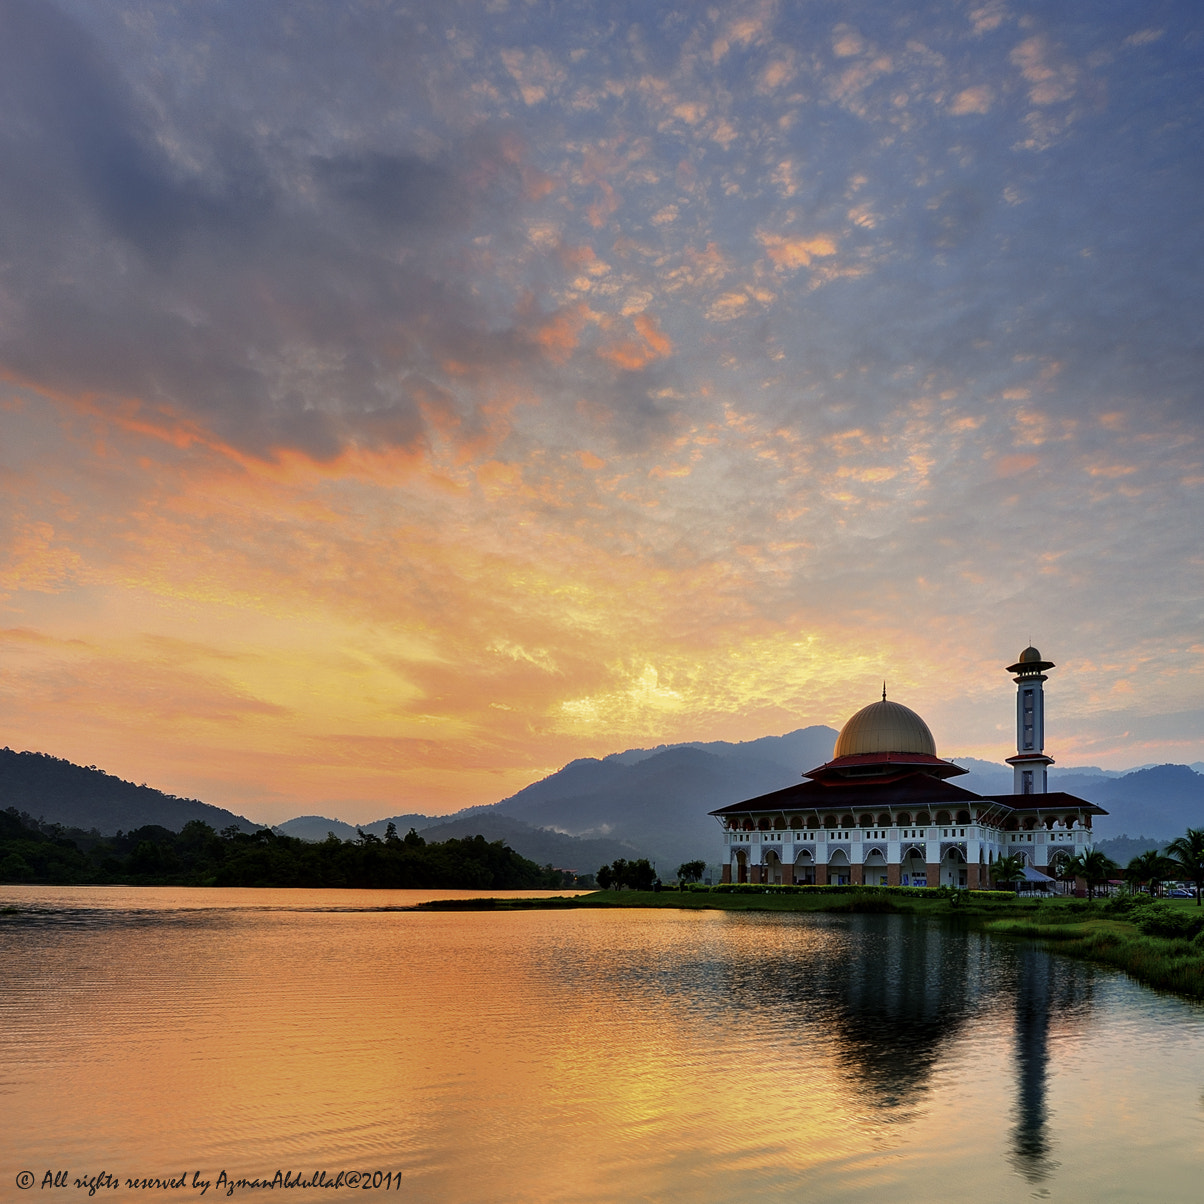 Photograph Haza Min Fadhli Robbi by Azman Abdullah on 500px